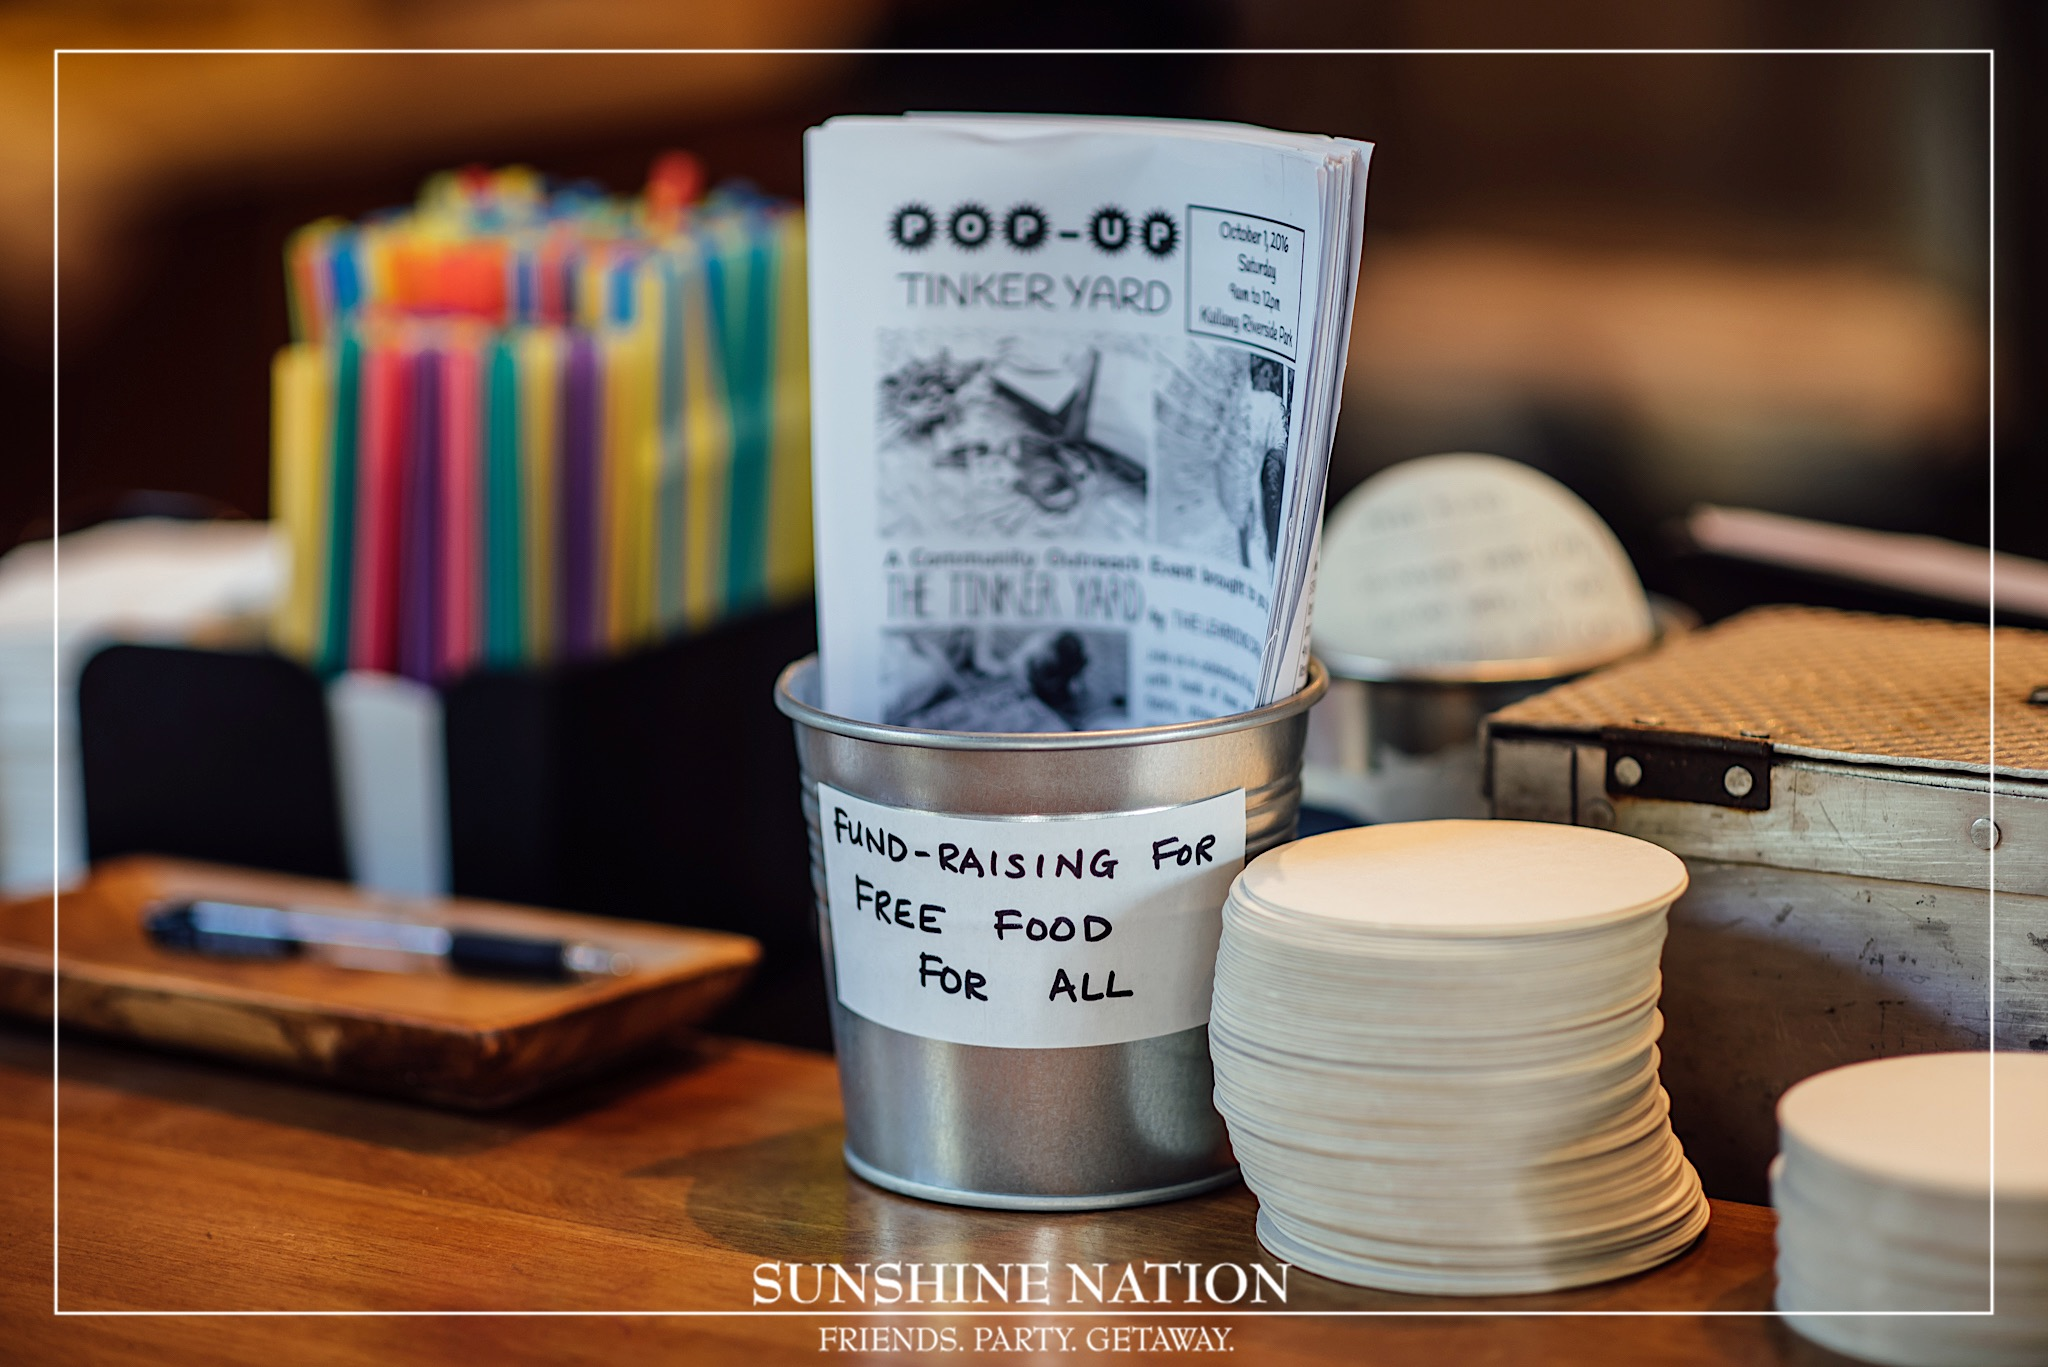 18092016_SunshineNation_Colossal044_Watermarked.jpg